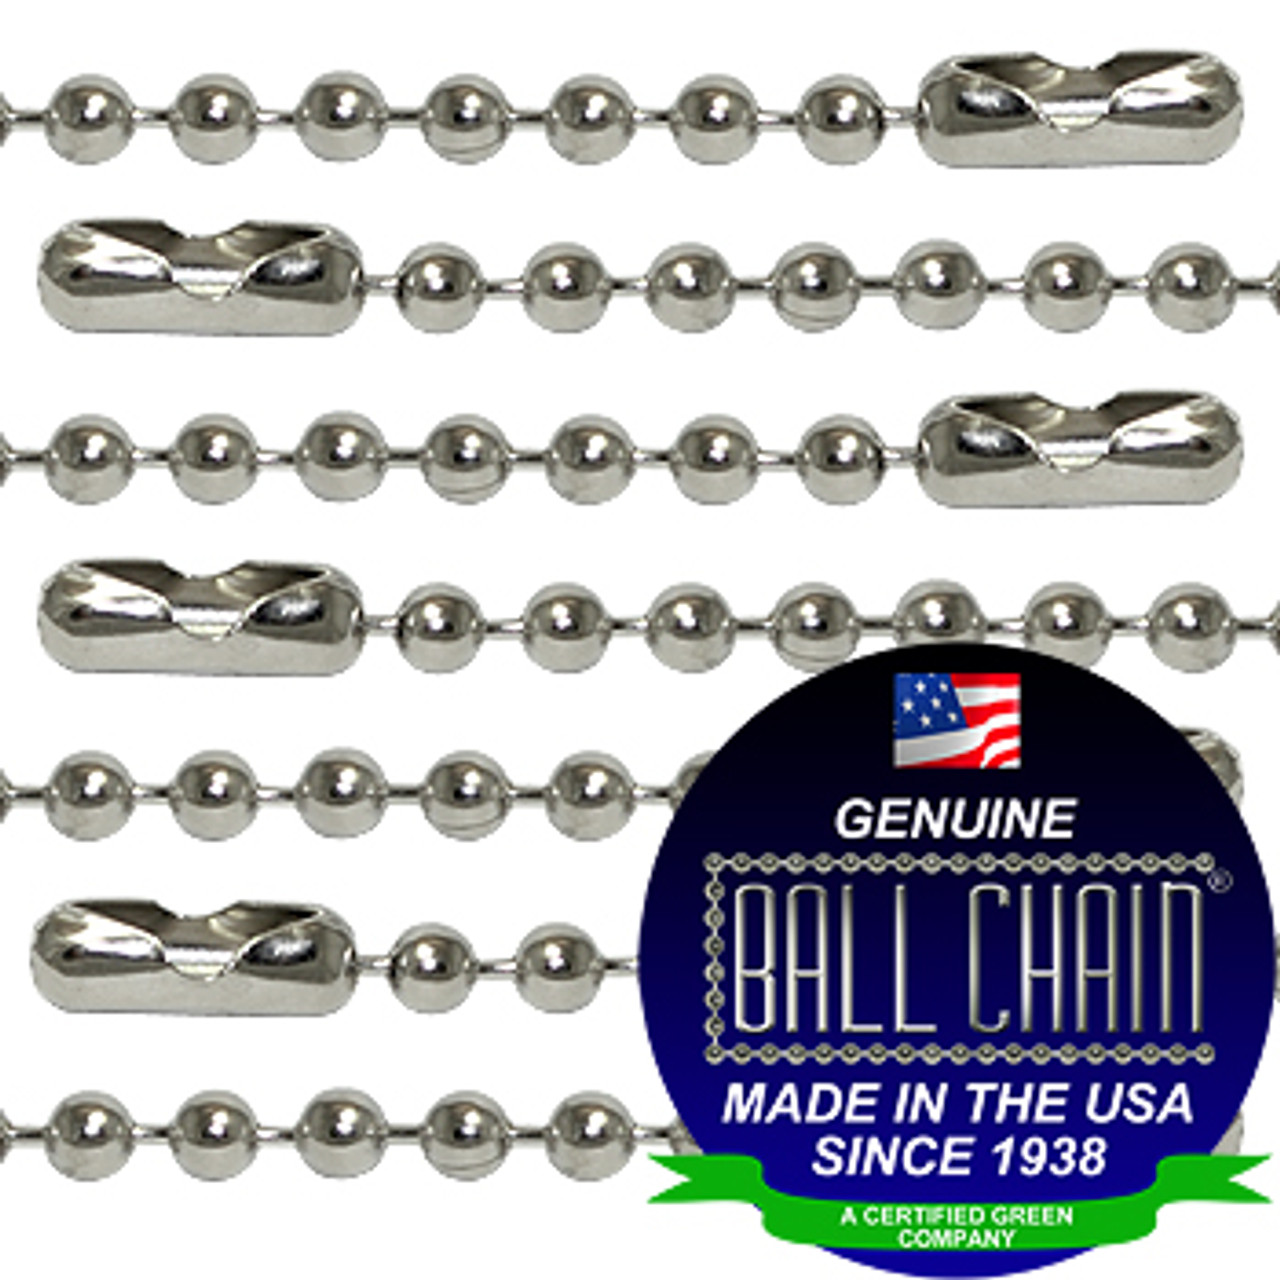 #6 Nickel Plated Steel Ball Chains with Connector - 14 Inch Length